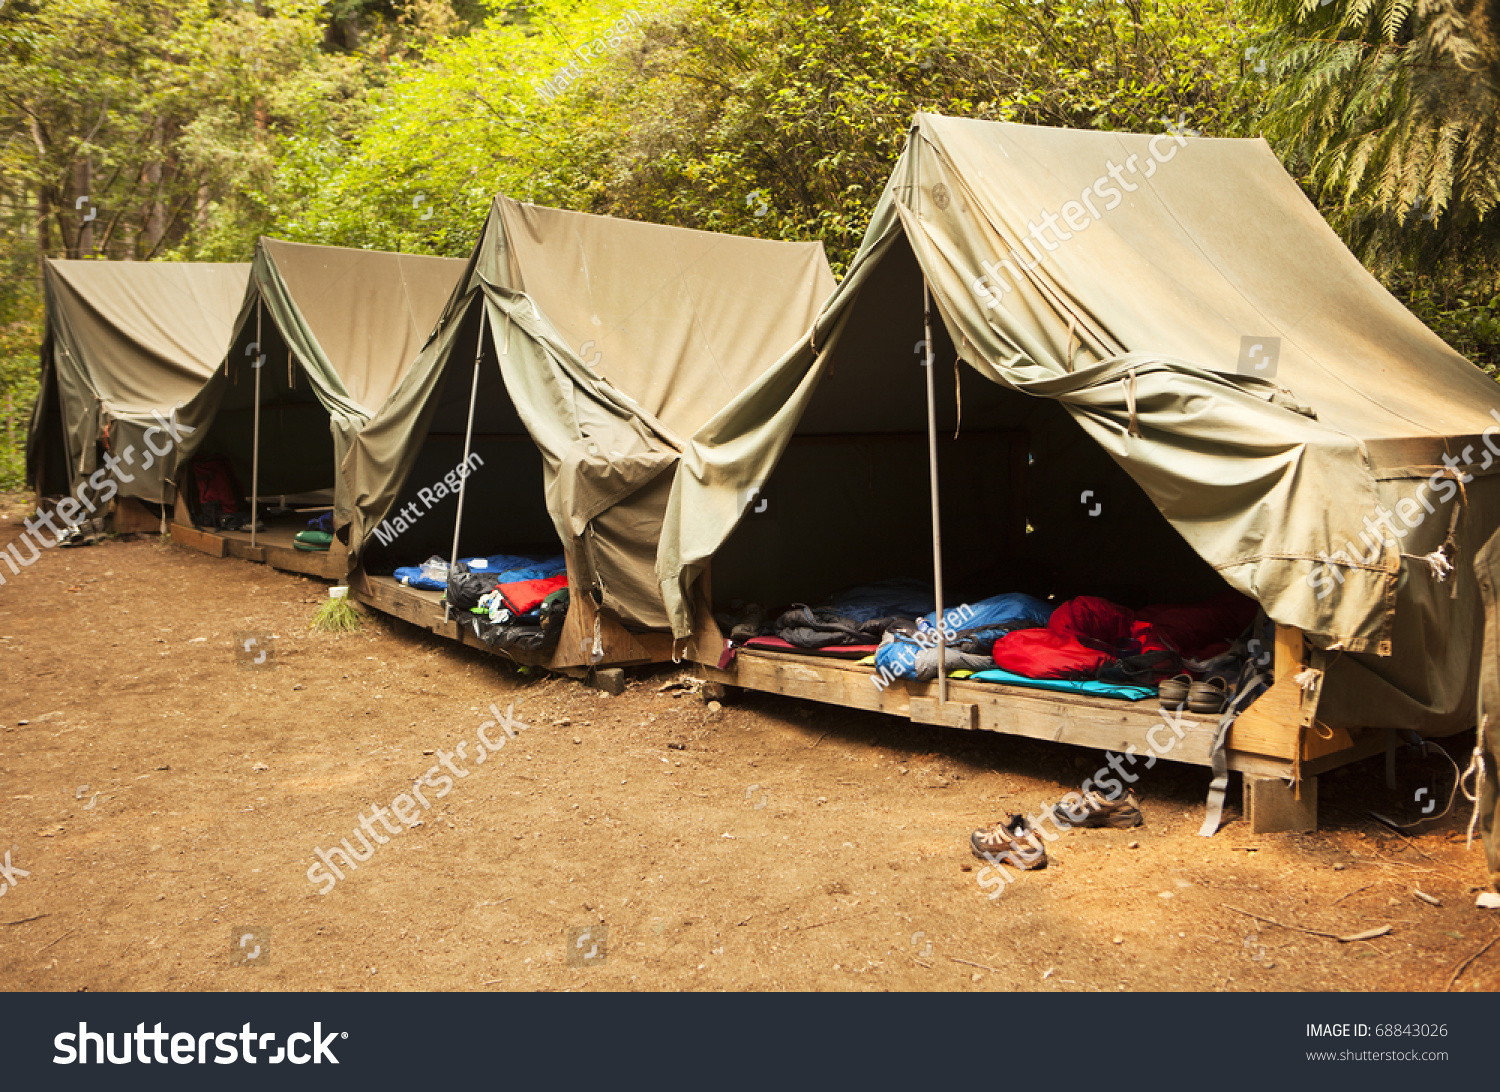 Online image photo editor shutterstock editor for Canvas platform tents